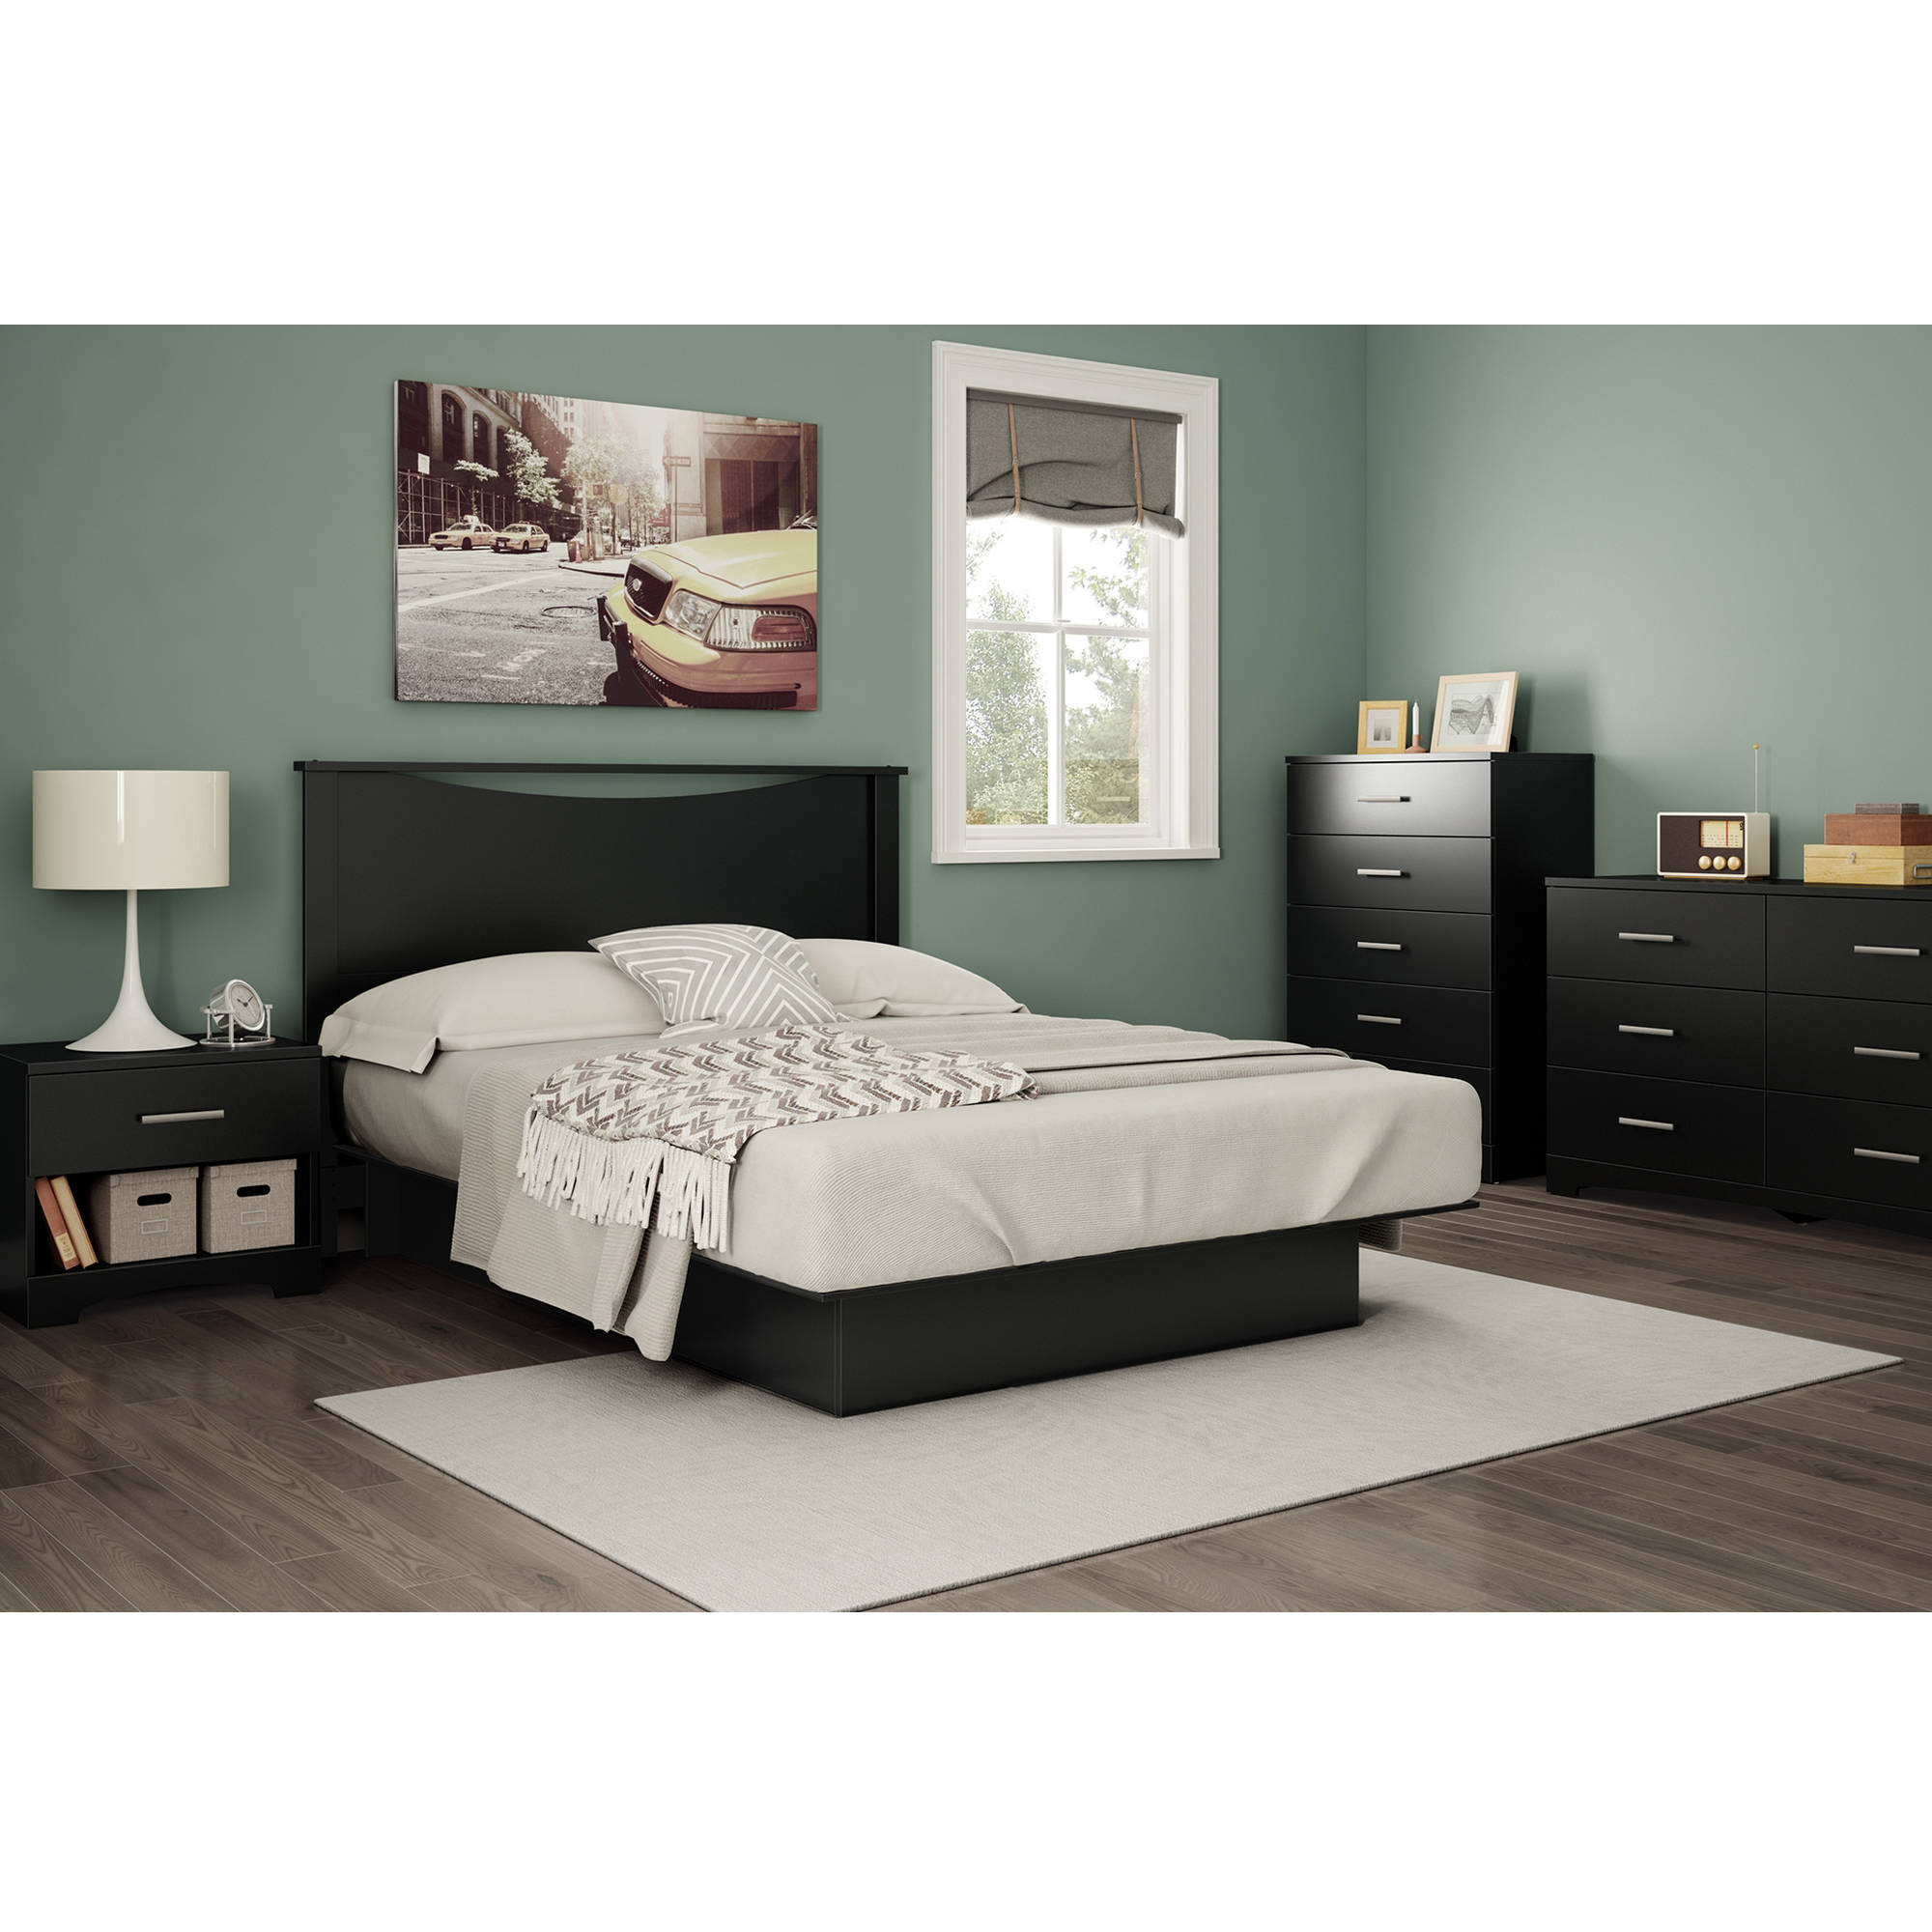 Best ideas about Walmart Bedroom Sets . Save or Pin South Shore Gramercy Bedroom Furniture Collection Now.